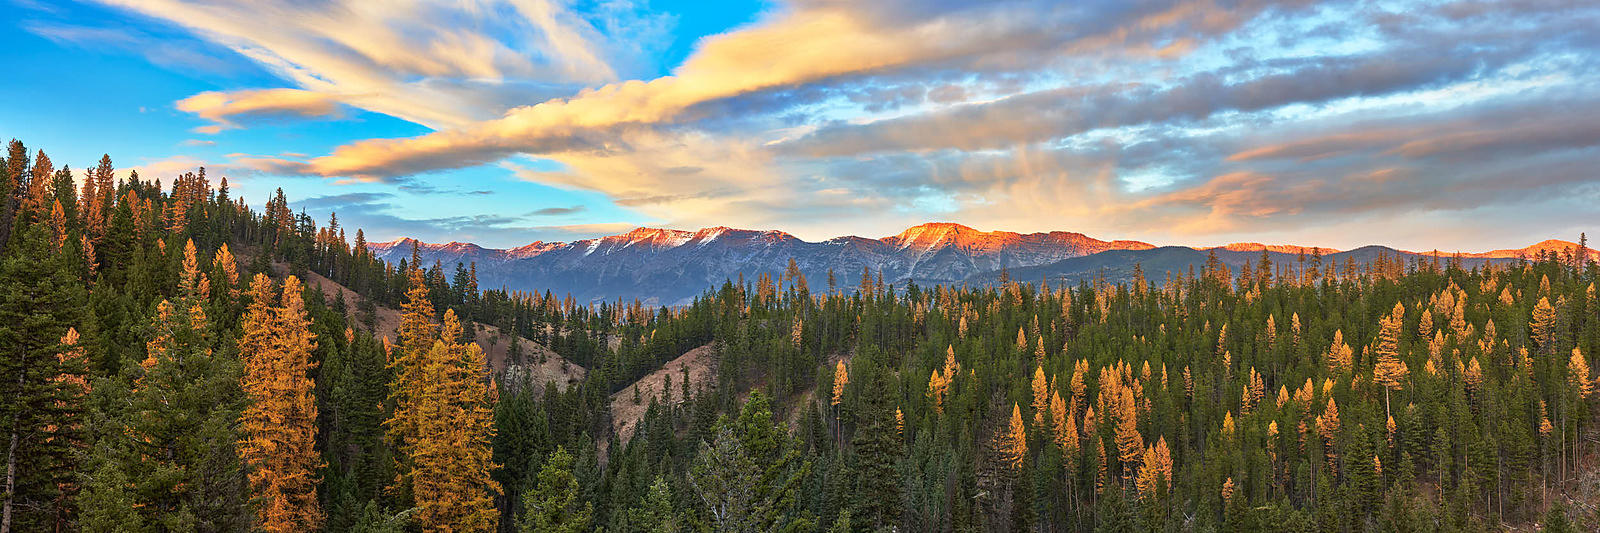 Seeley Range Fall Sunset - Panorama